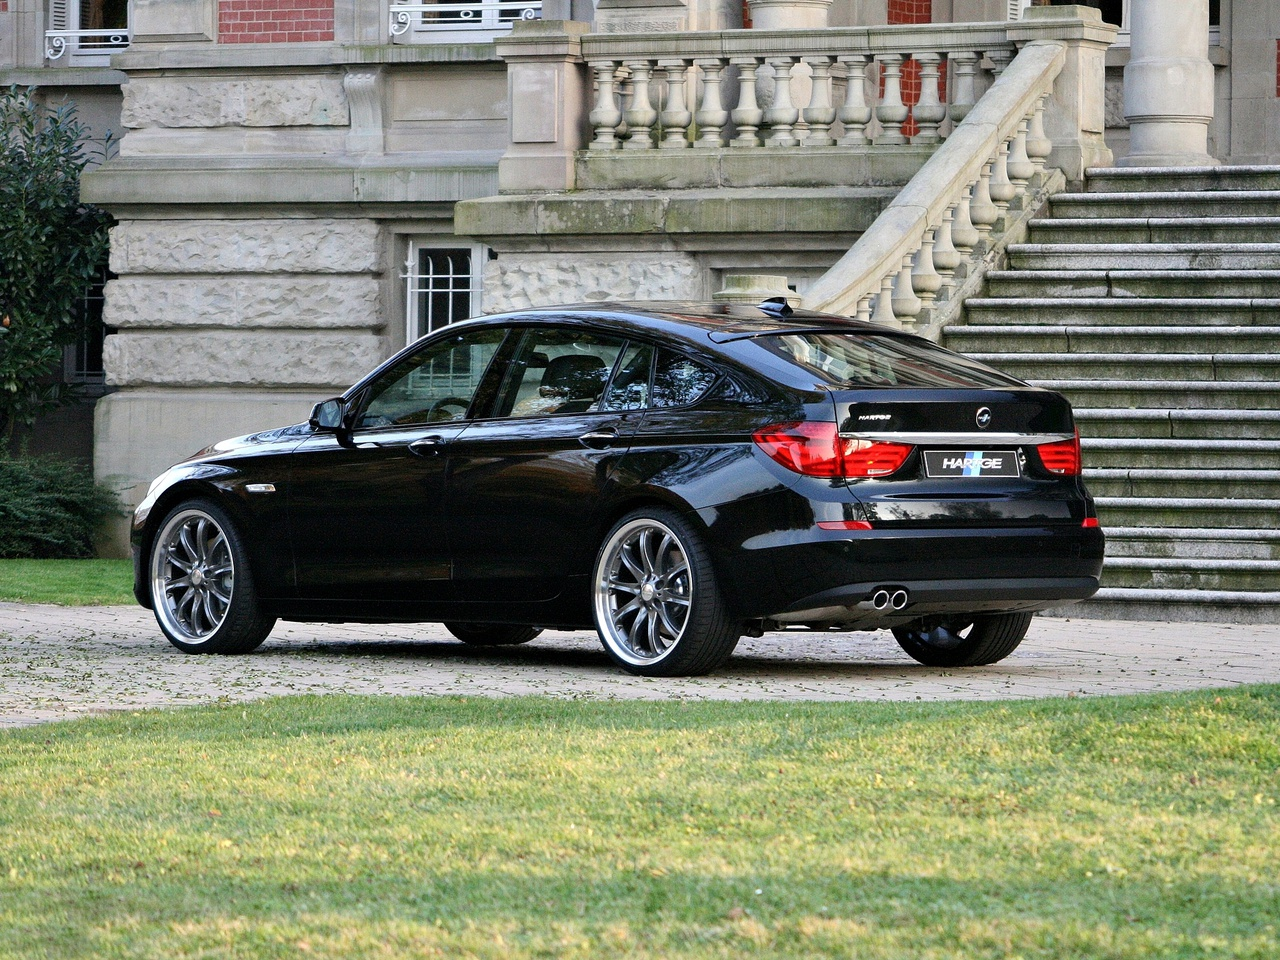 Bmw 5 Series Gran Turismo Picture 101068 Bmw Photo Gallery Carsbase Com